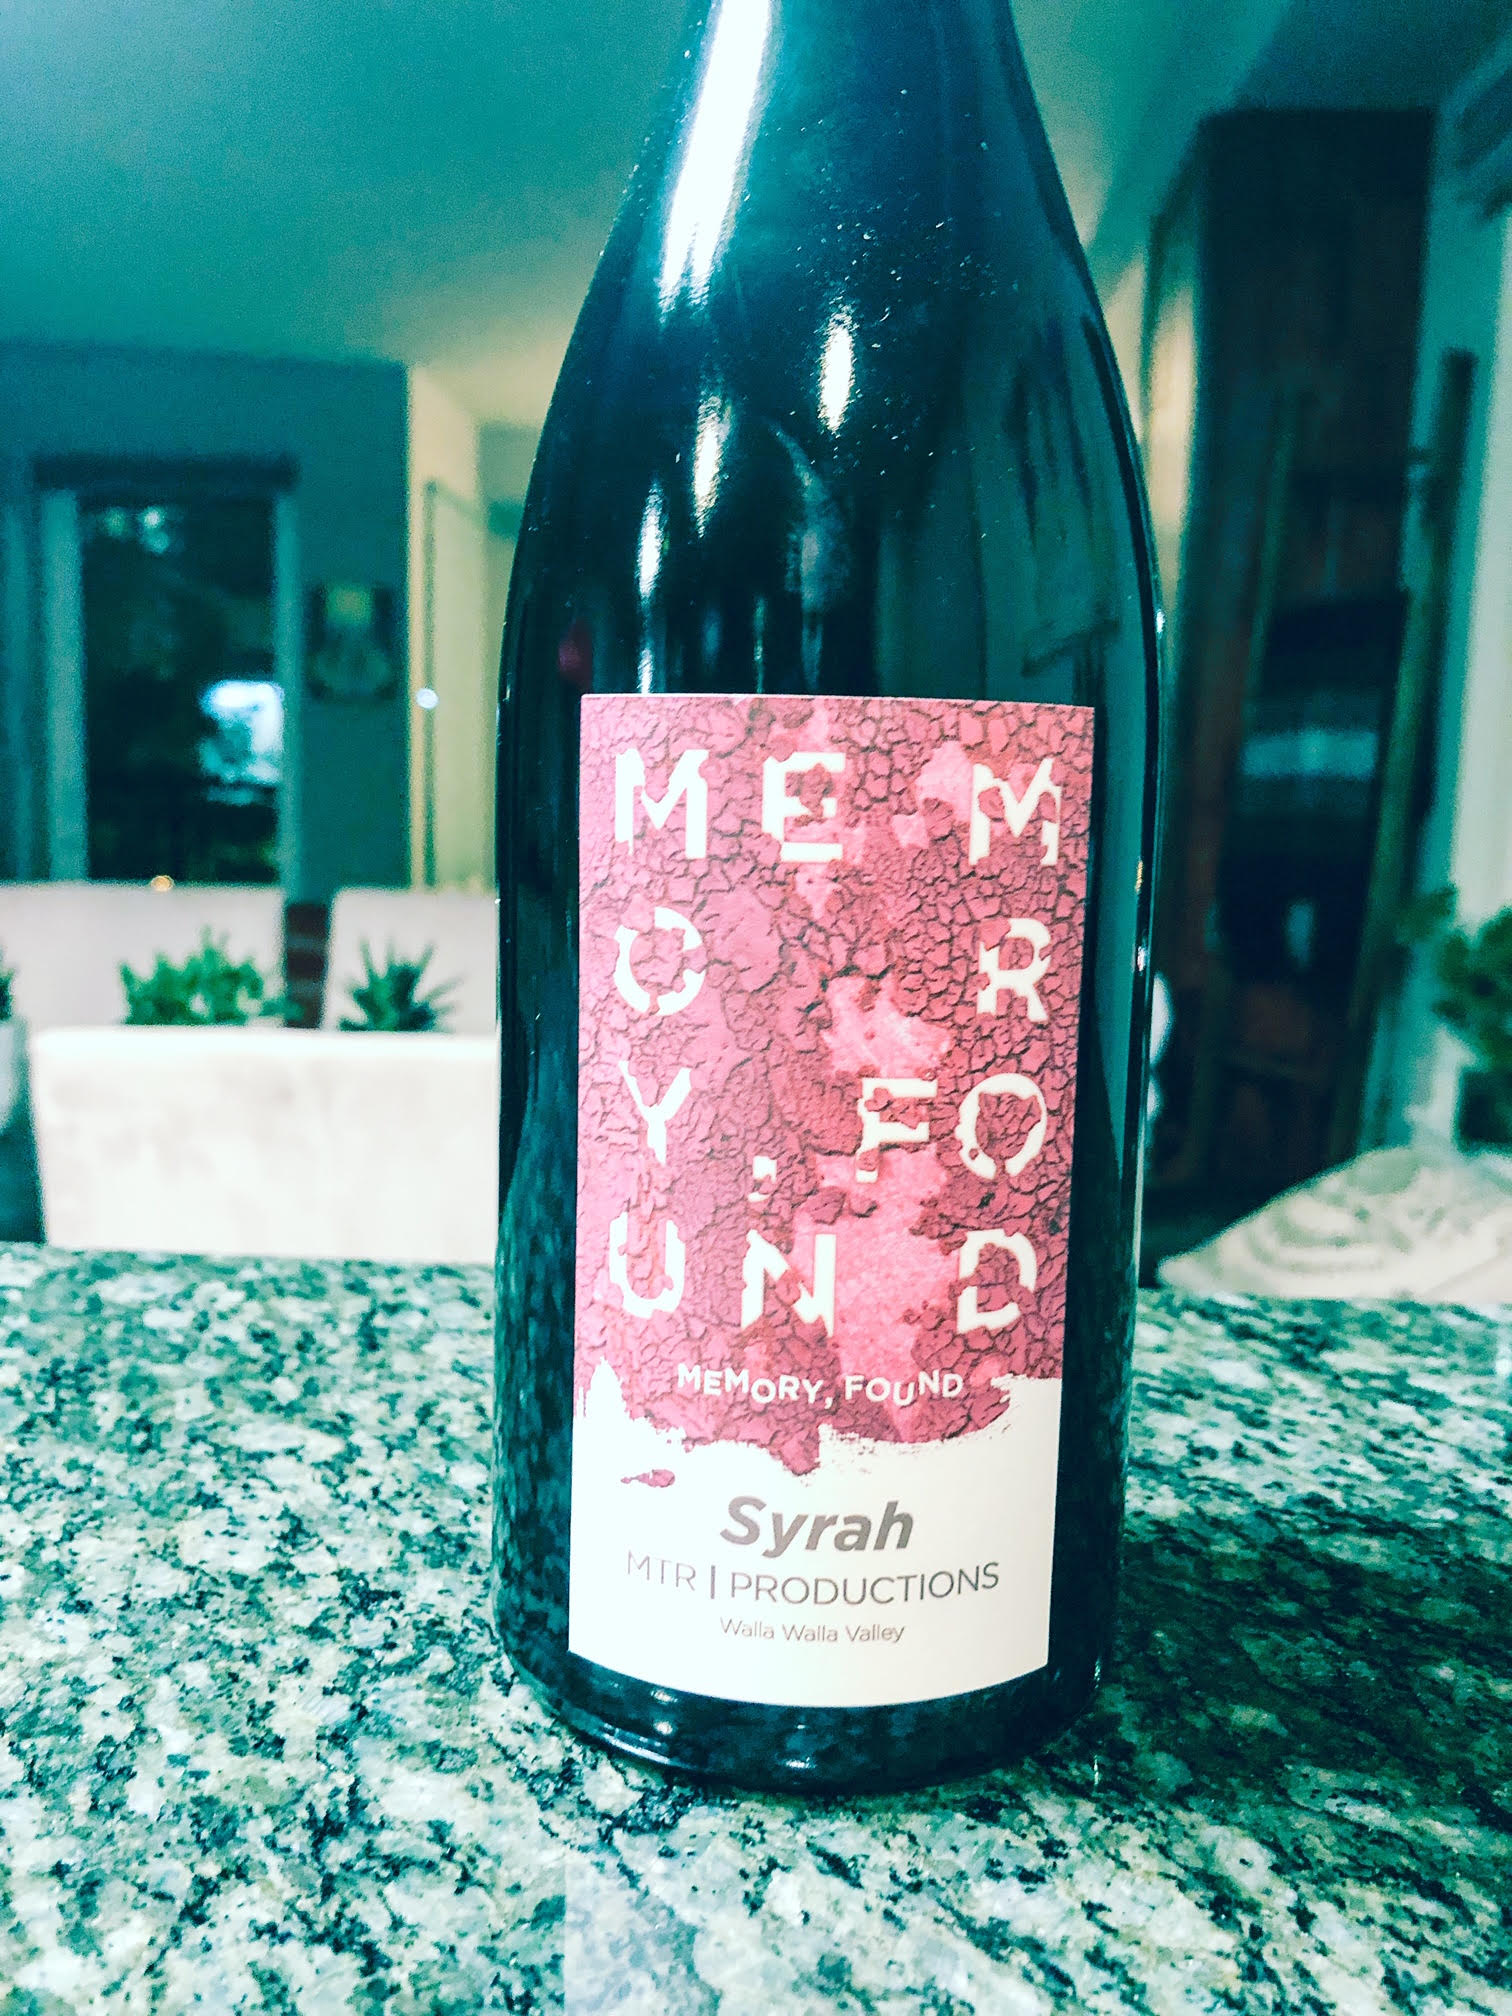 The 2013 MTR Productions 'Memory Found' Syrah is a head-turning wine that shows wonderful poise, salinity and stony terroir.